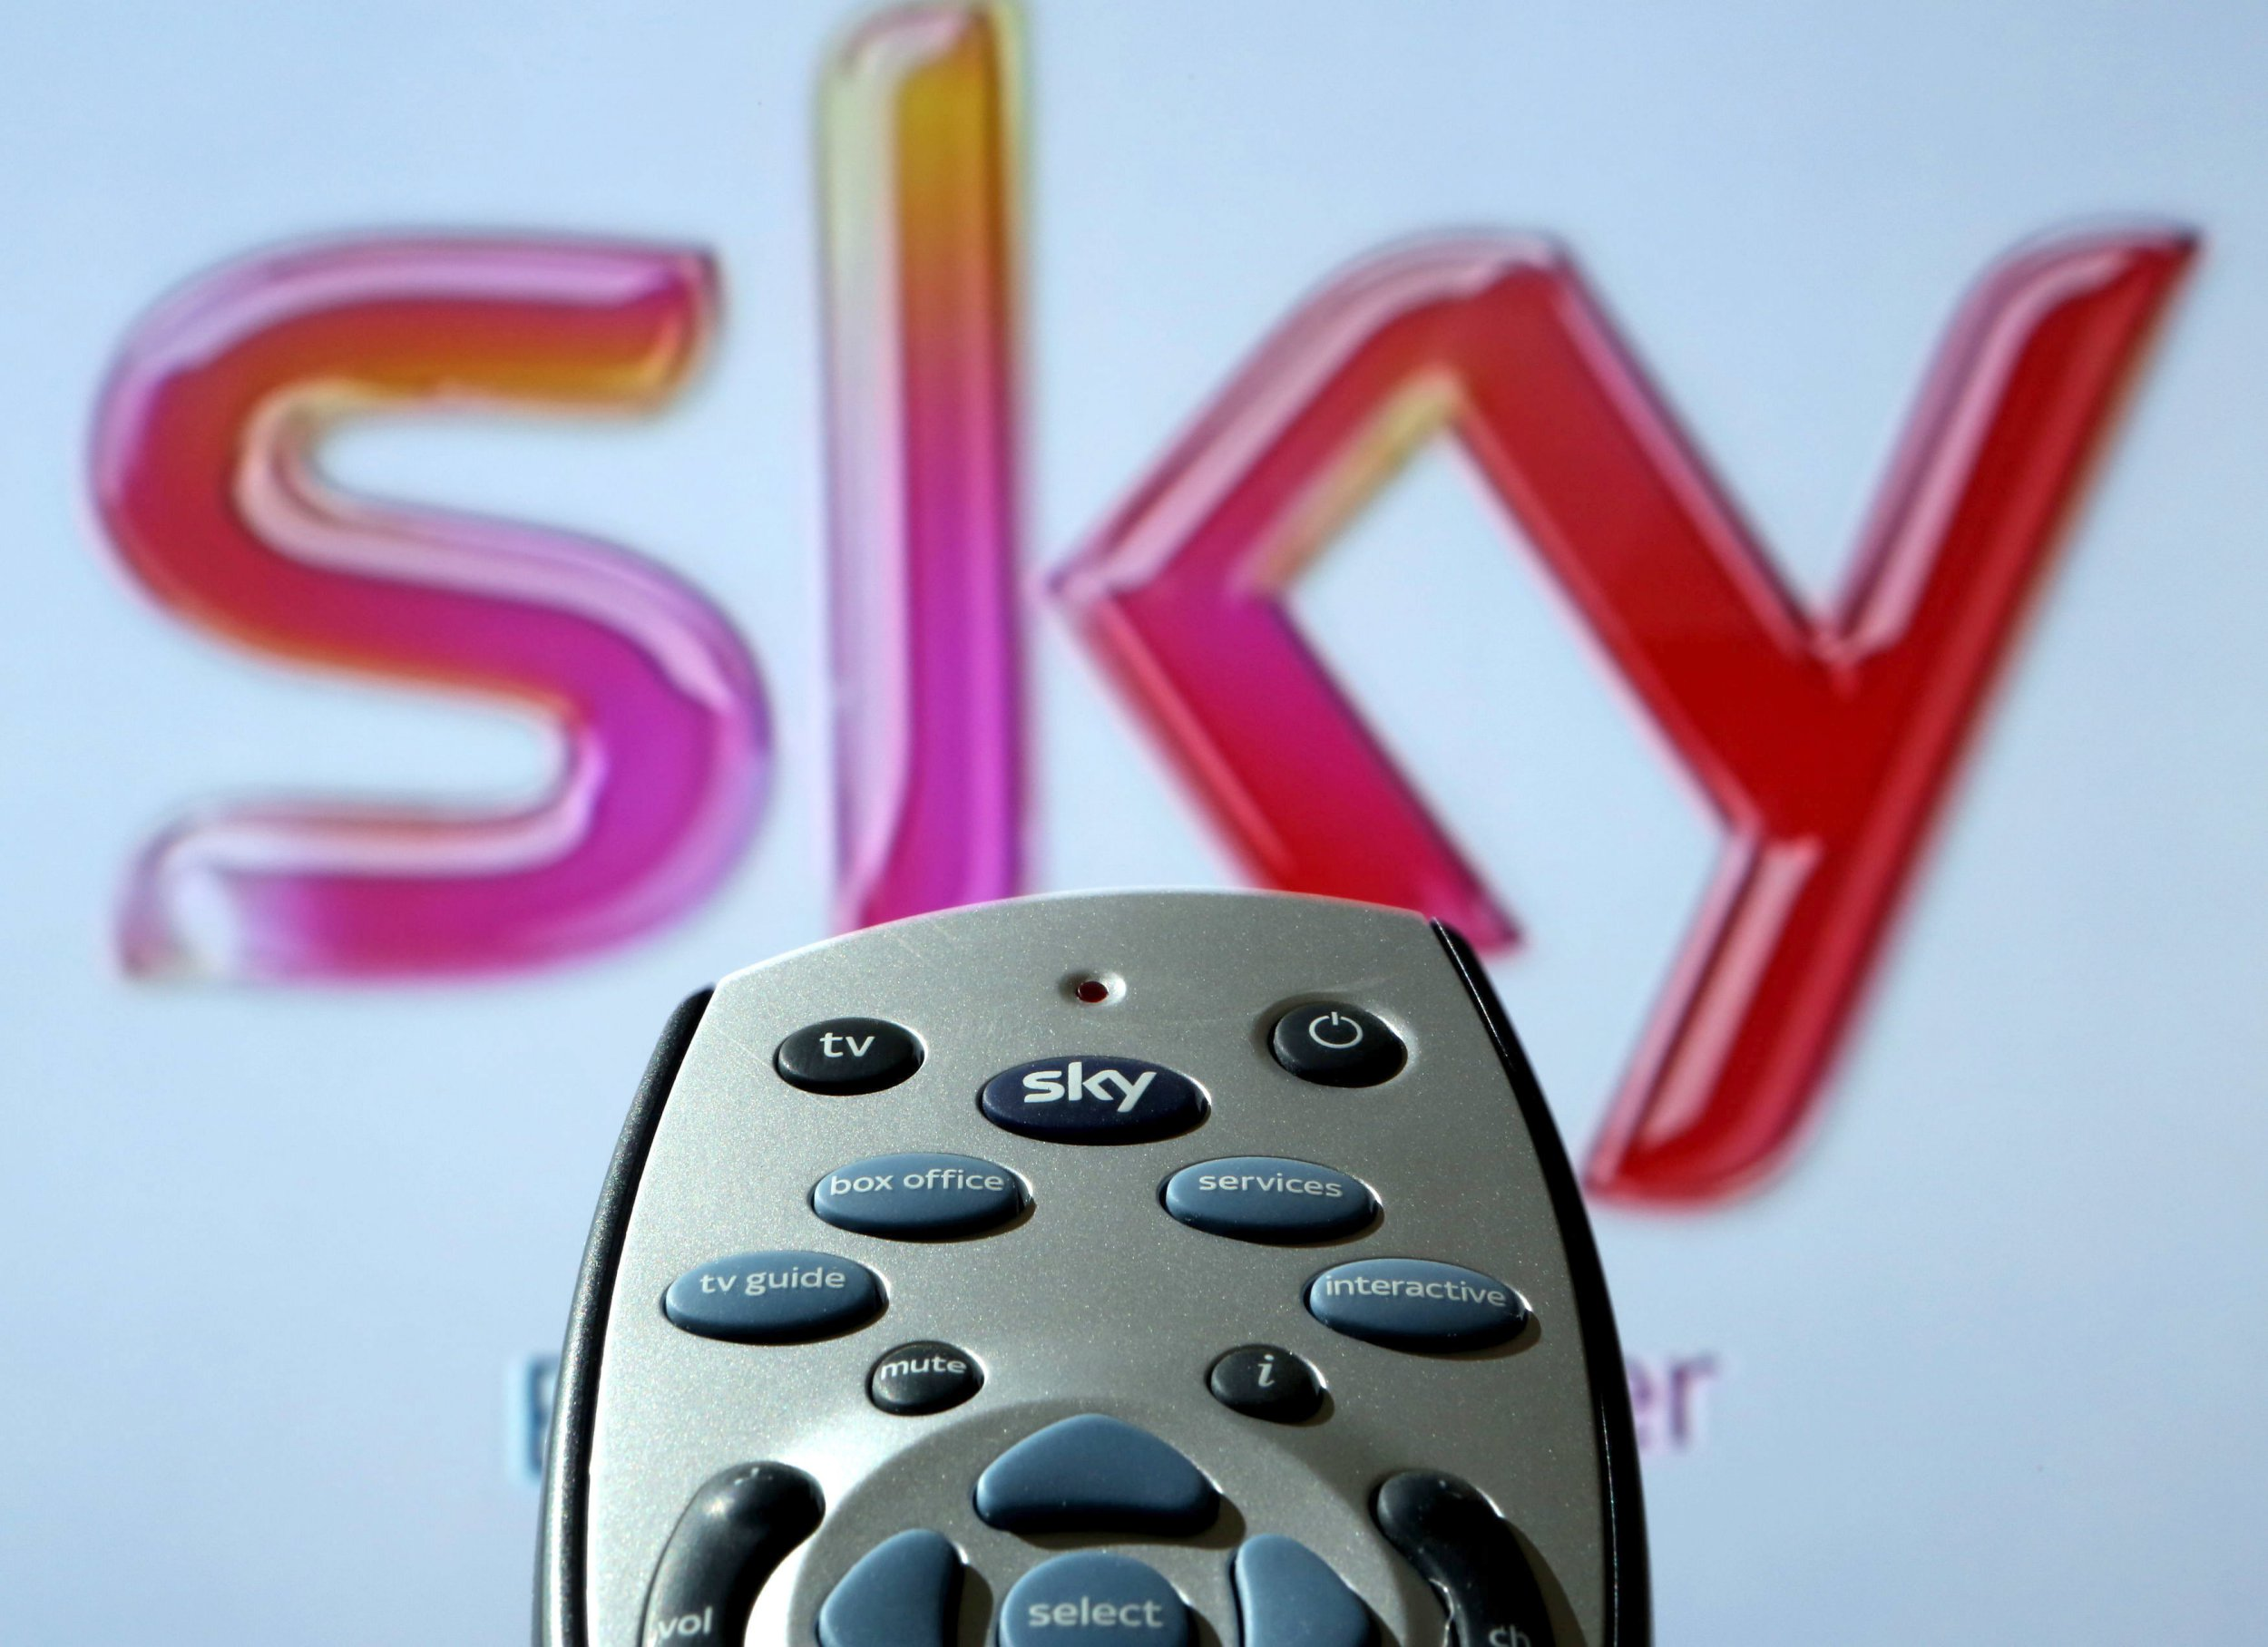 Sky TV deal 'will save you £590' as it steps up battle with Virgin Media